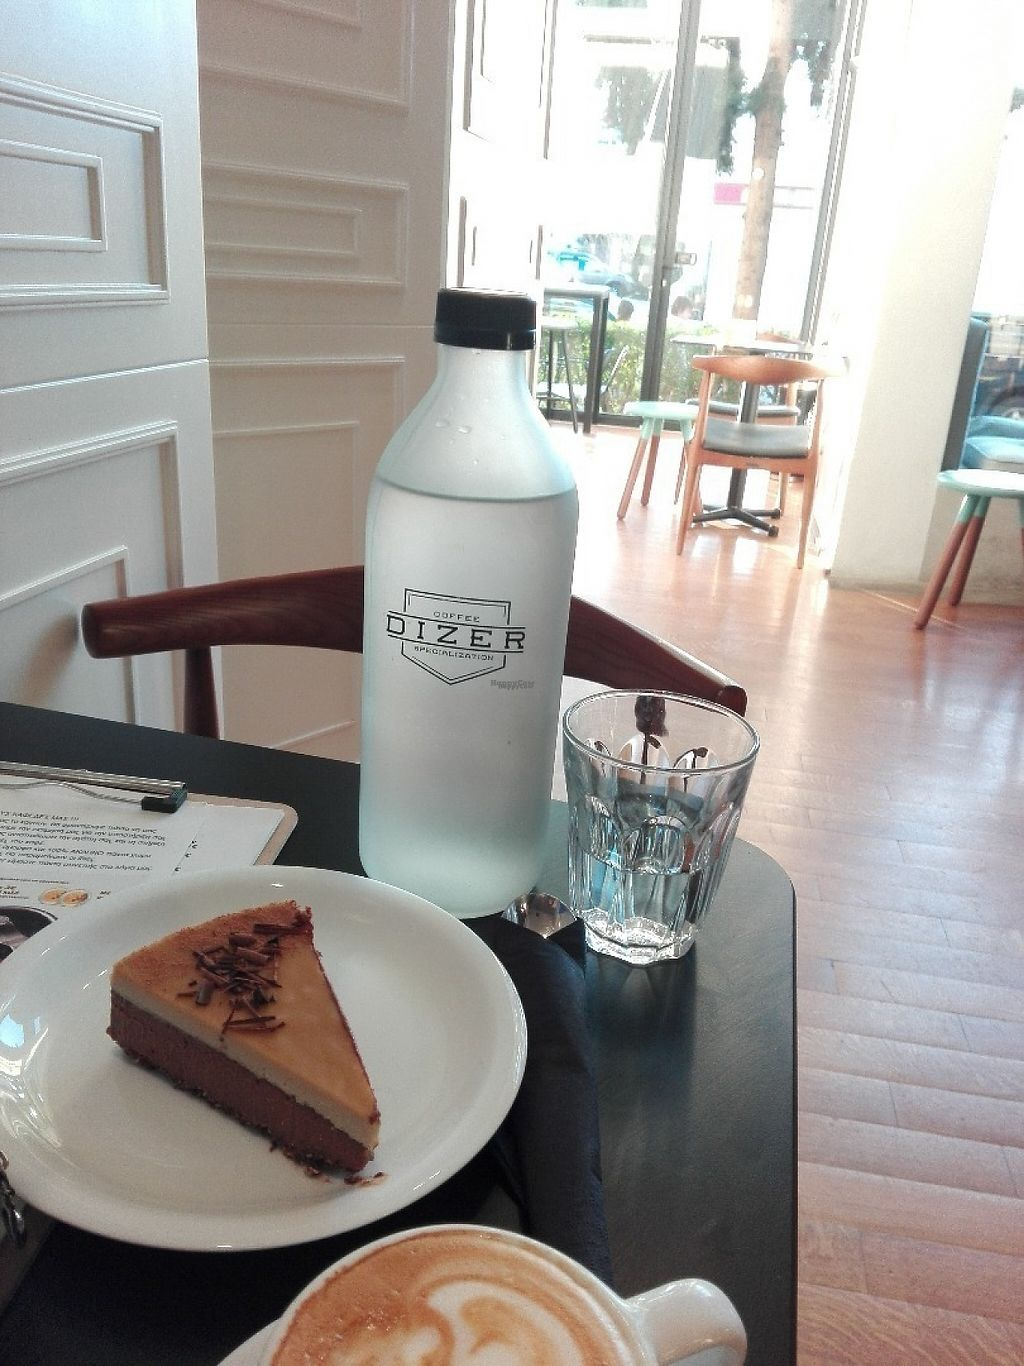 "Photo of Dizer Coffee Specialization  by <a href=""/members/profile/ElisaGR"">ElisaGR</a> <br/>Moca vegan cheese cake made by Vegan Fairies! <br/> February 25, 2017  - <a href='/contact/abuse/image/86208/230389'>Report</a>"